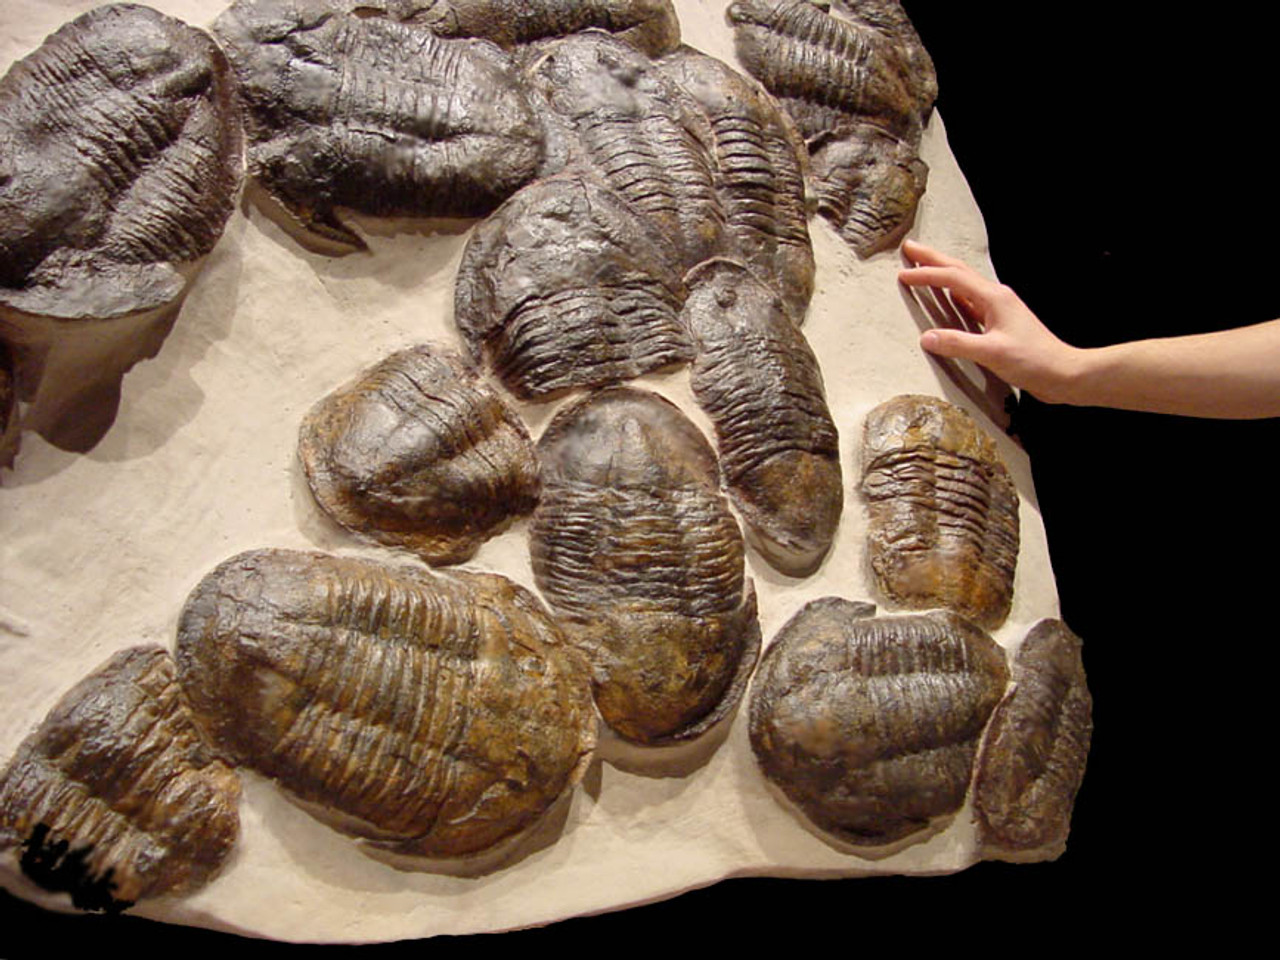 MUSEUM CLASS MASS EXTINCTION FOSSIL OF LARGE ASAPHUS TRILOBITES IN NATURAL DEATH GROUP *TRX010